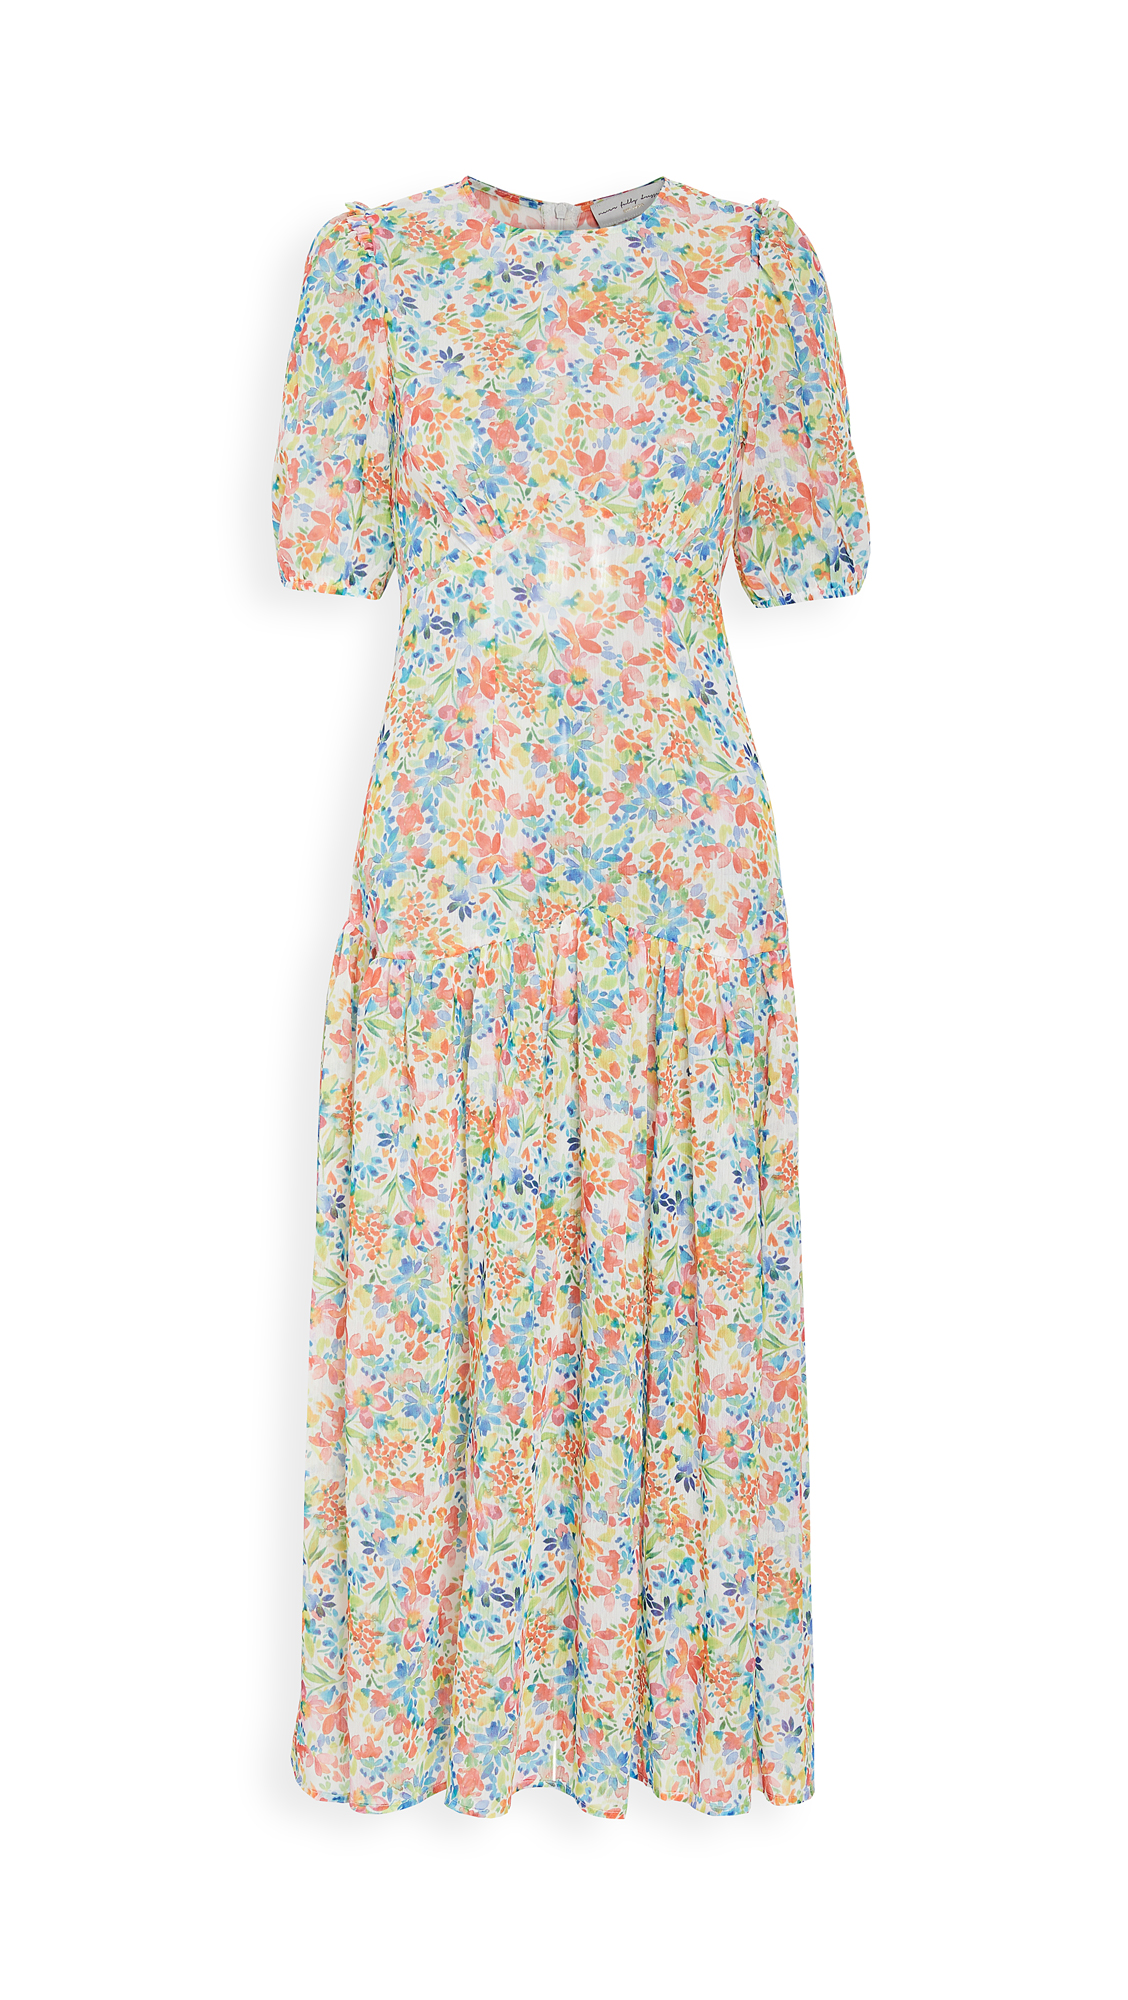 Photo of Never Fully Dressed Lucia Dress - shop Never Fully Dressed Clothing, Dresses online